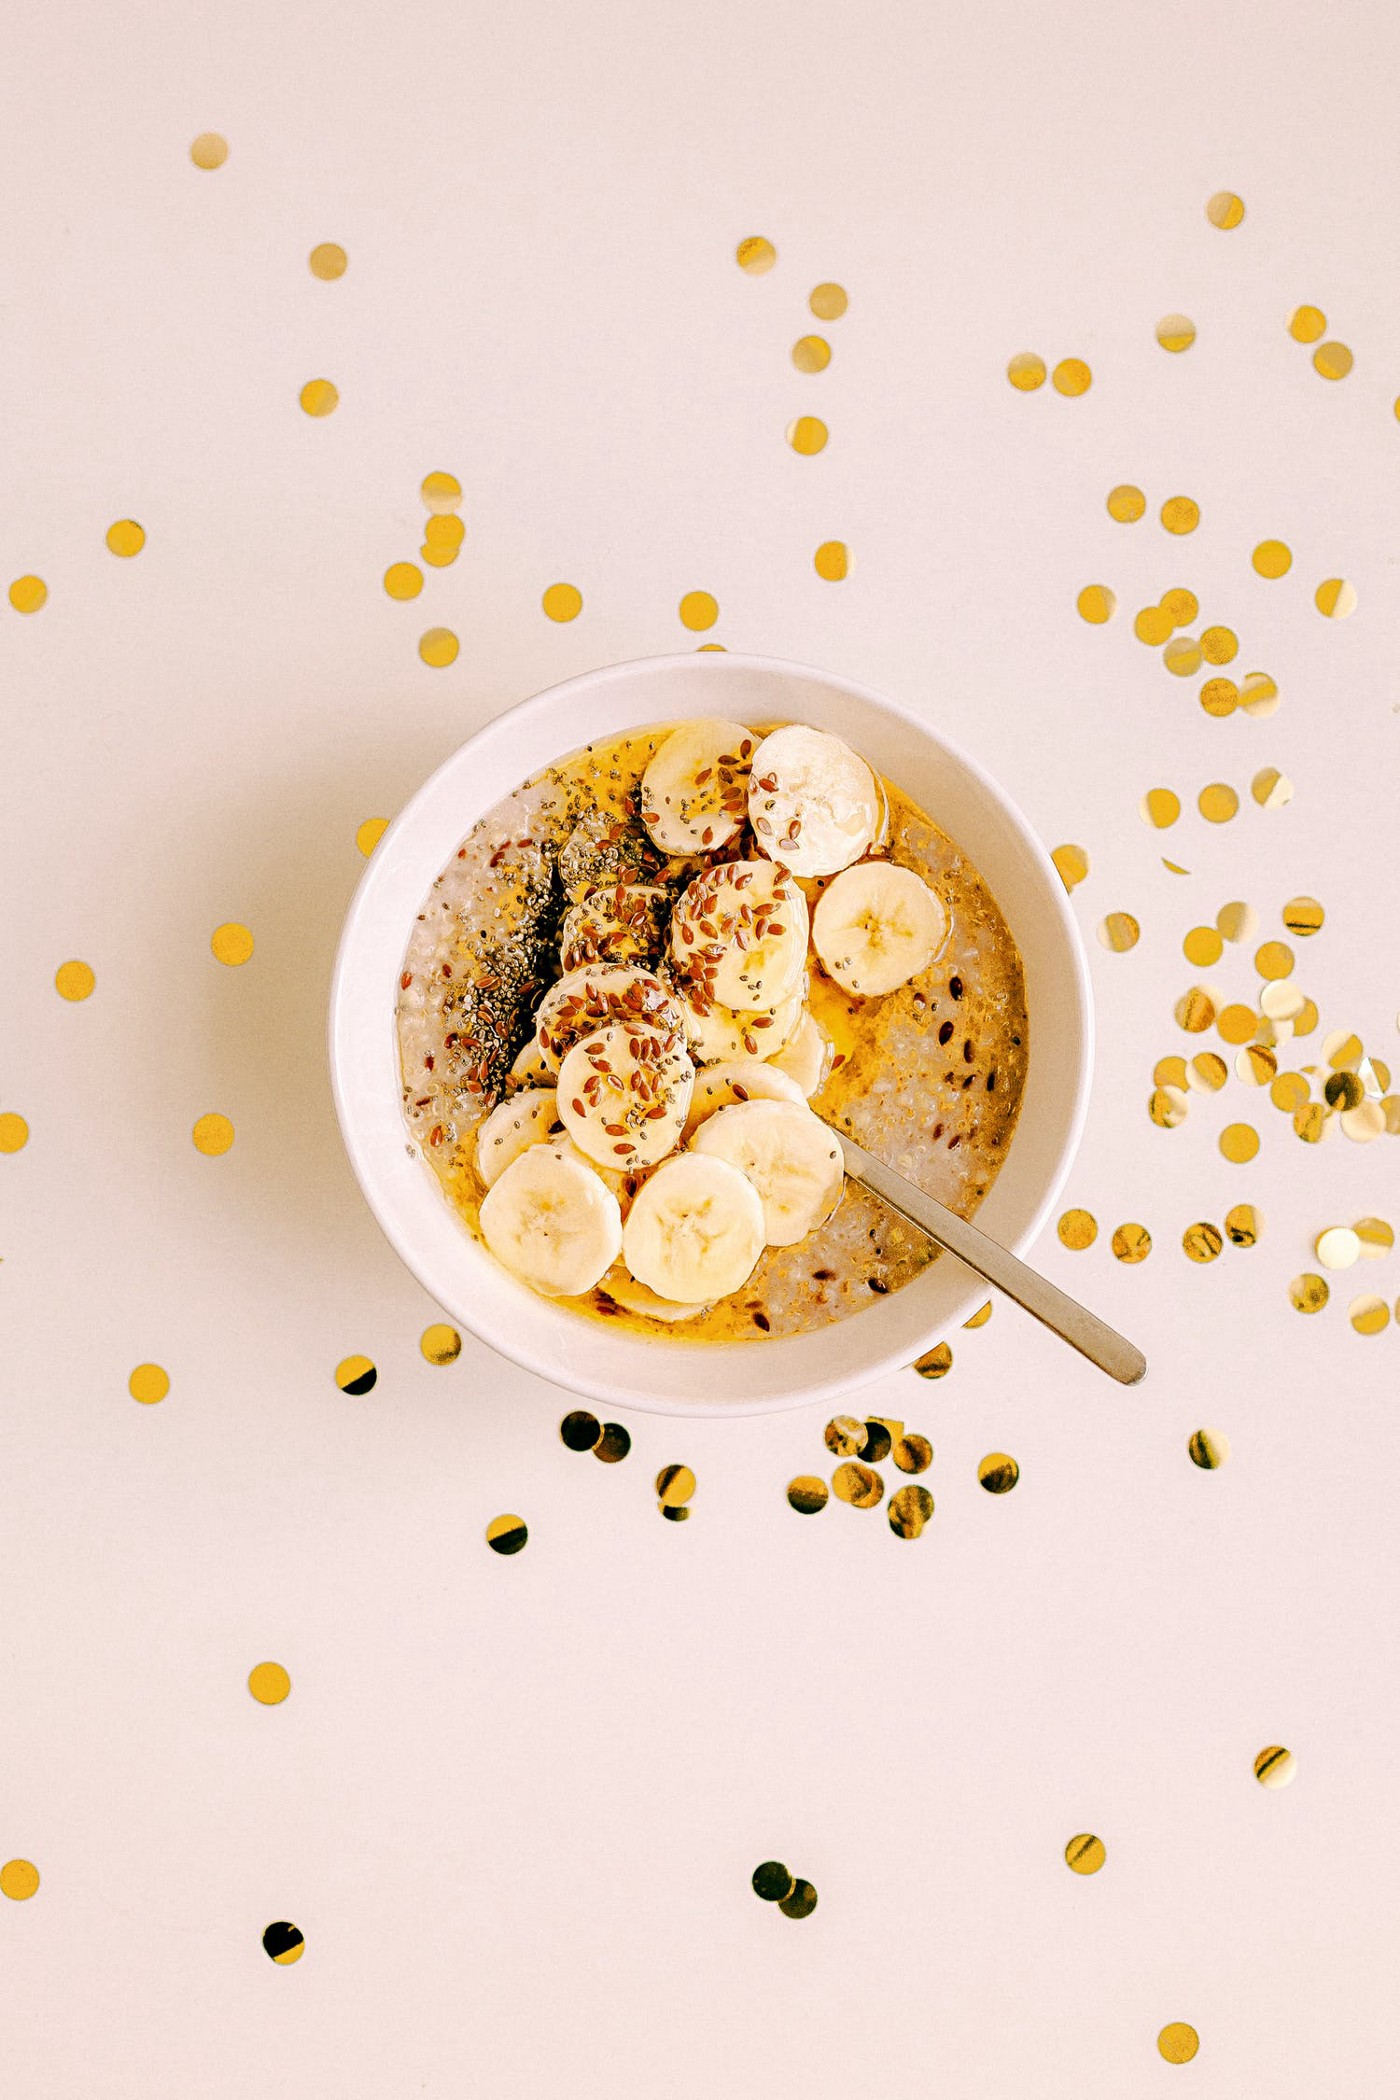 vegan sugarfree breakfast in bowl with bananas, quaker and seeds